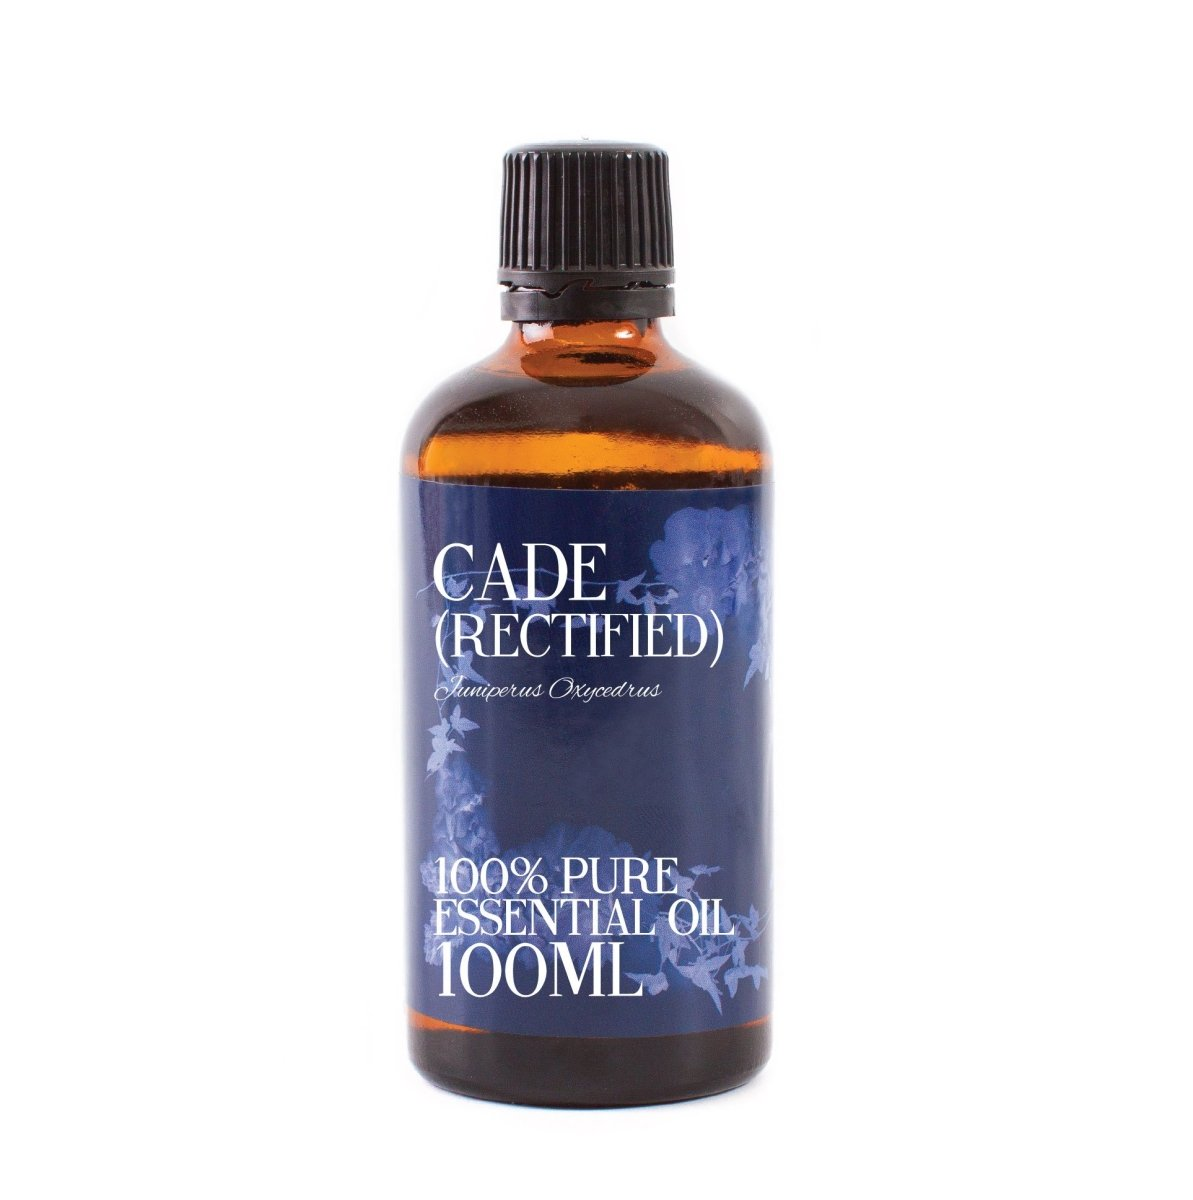 Cade (Rectified) Essential Oil - Mystic Moments UK